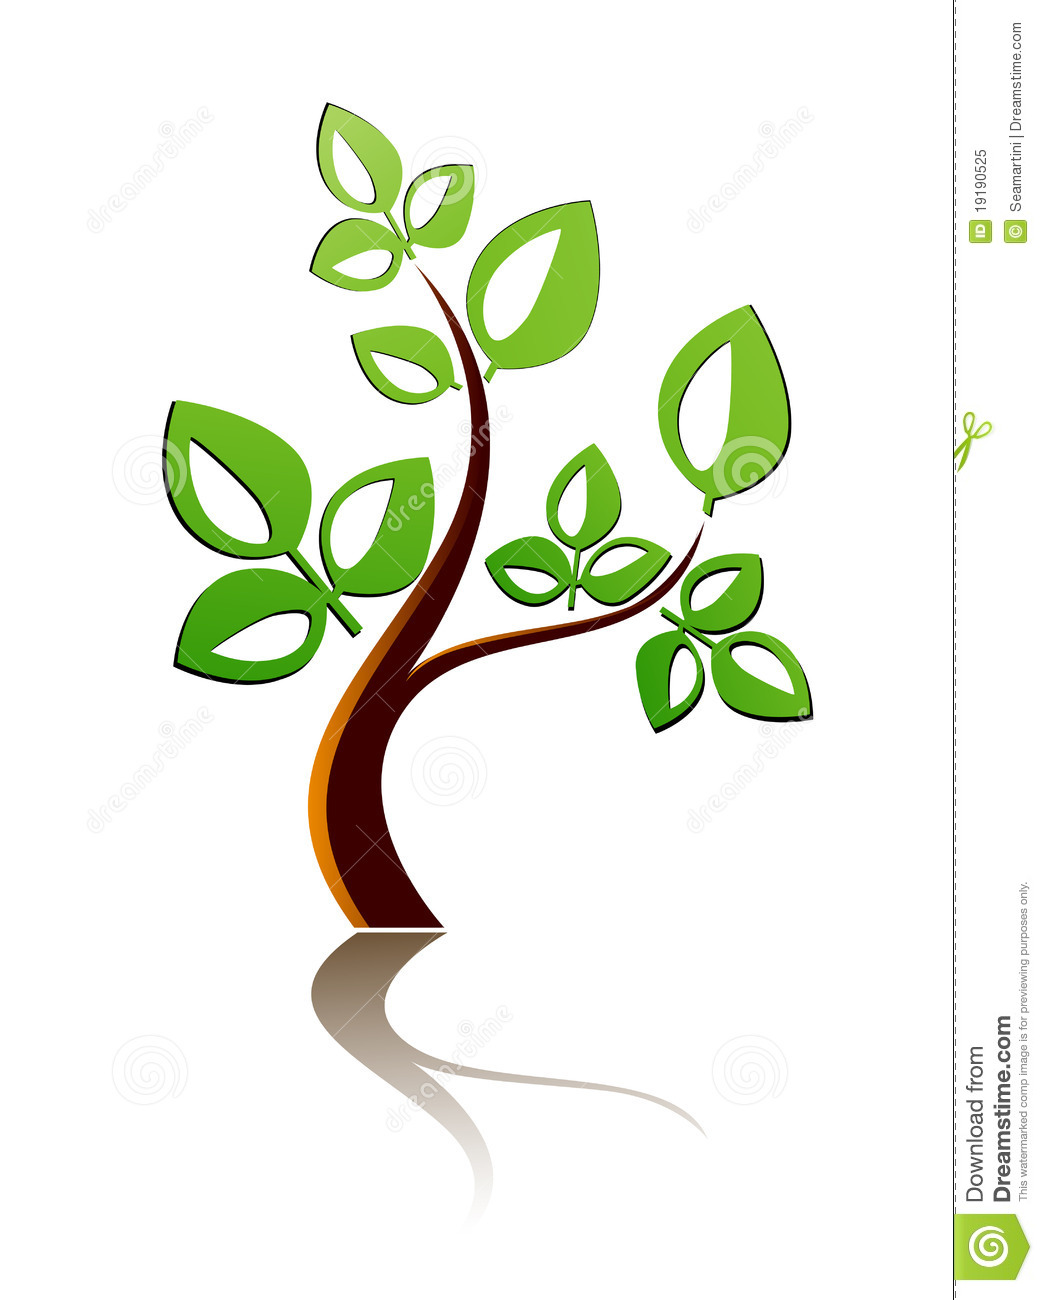 Tree Icon Royalty Free Stock Photo - Image: 19190525